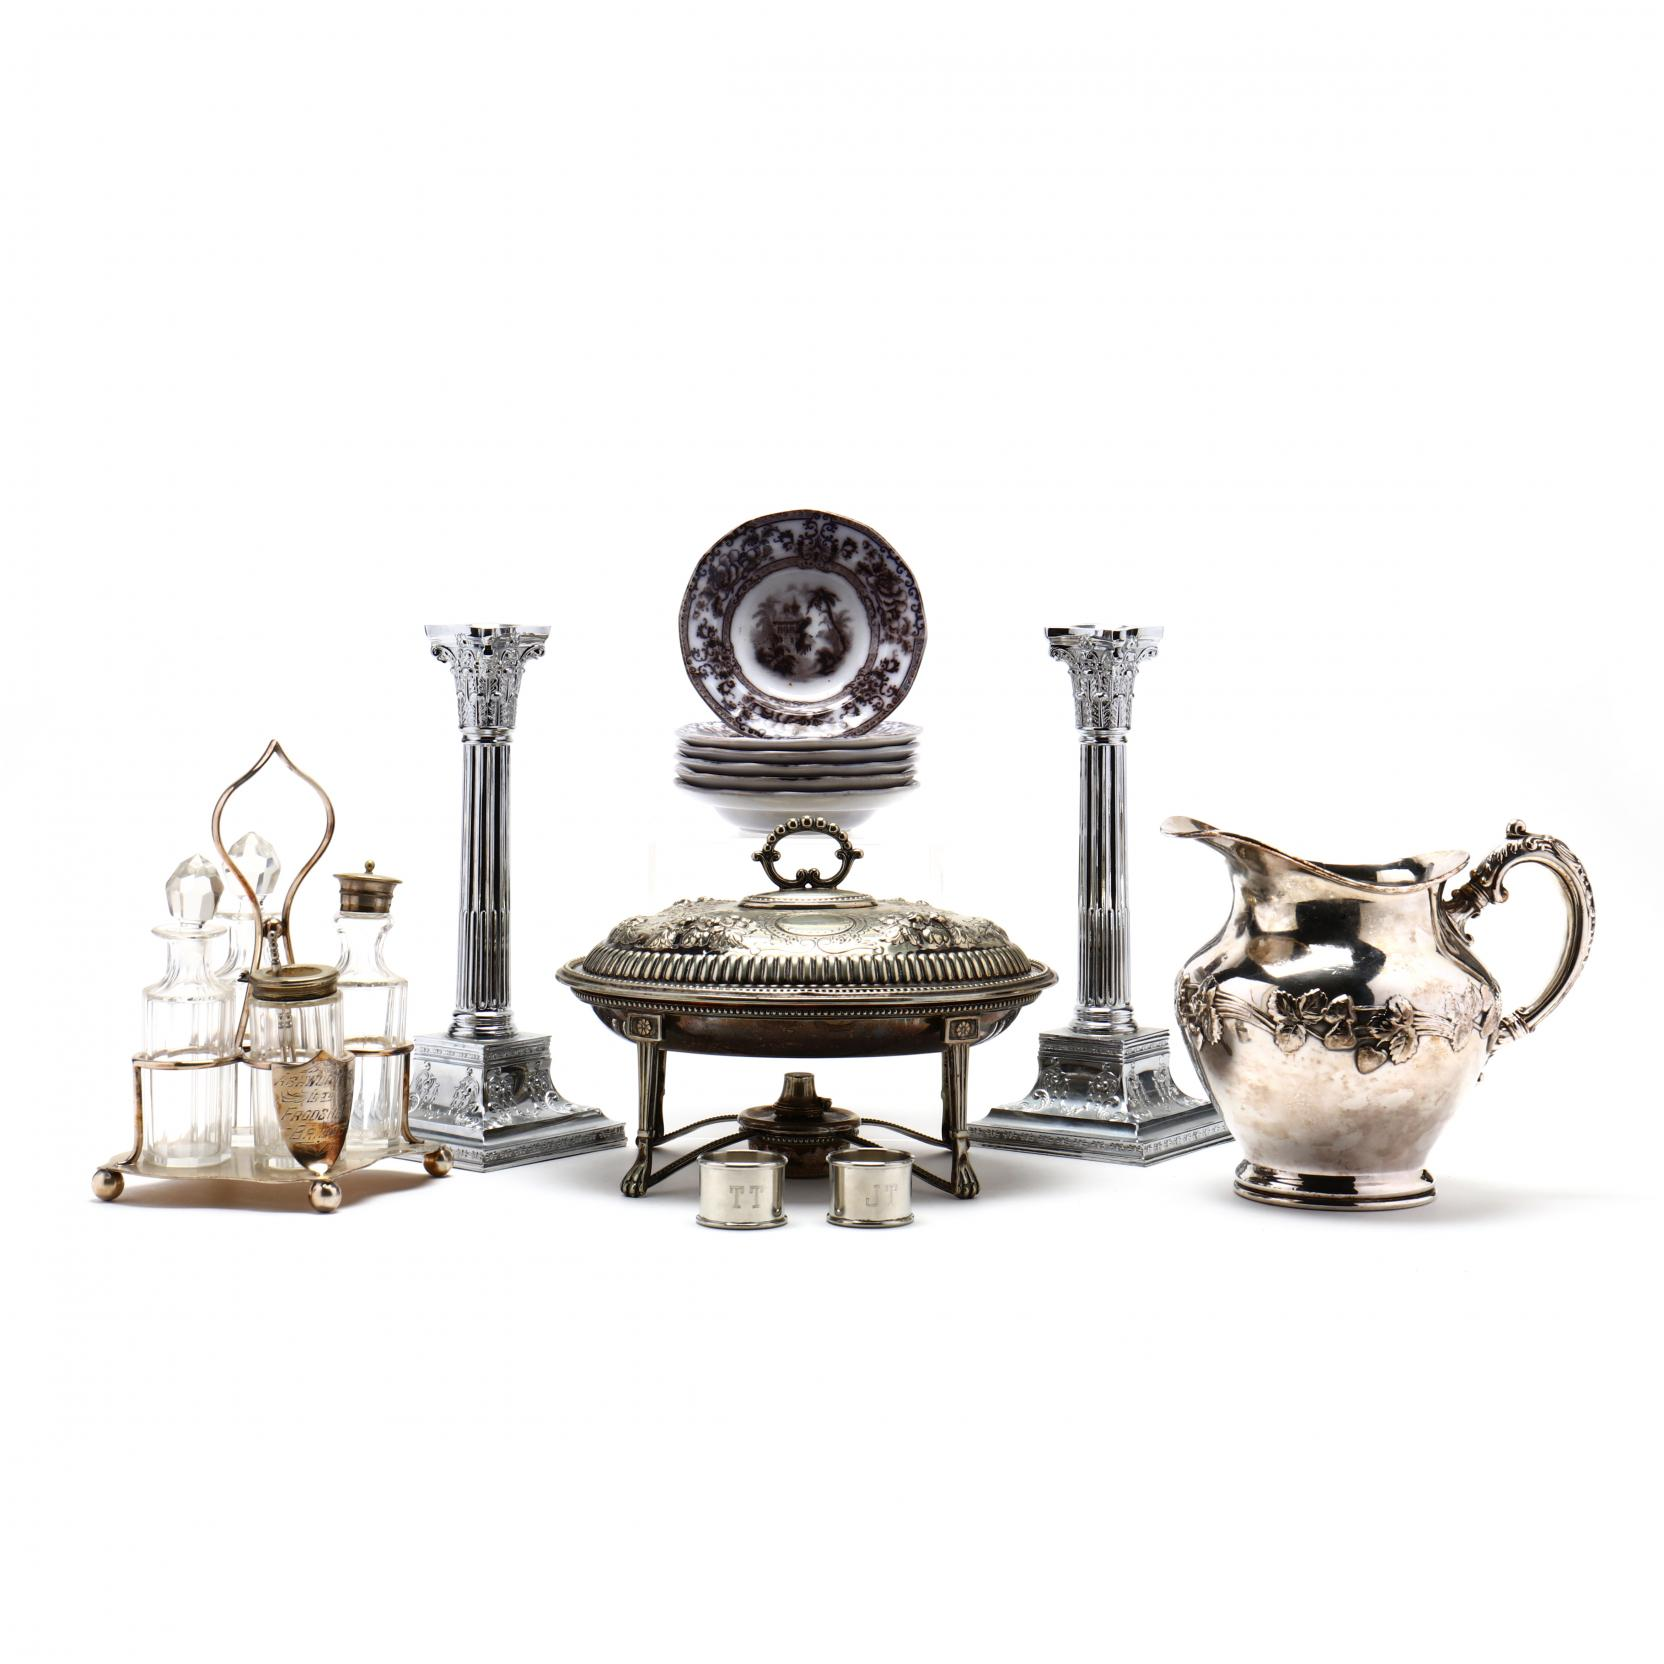 antique-tableware-grouping